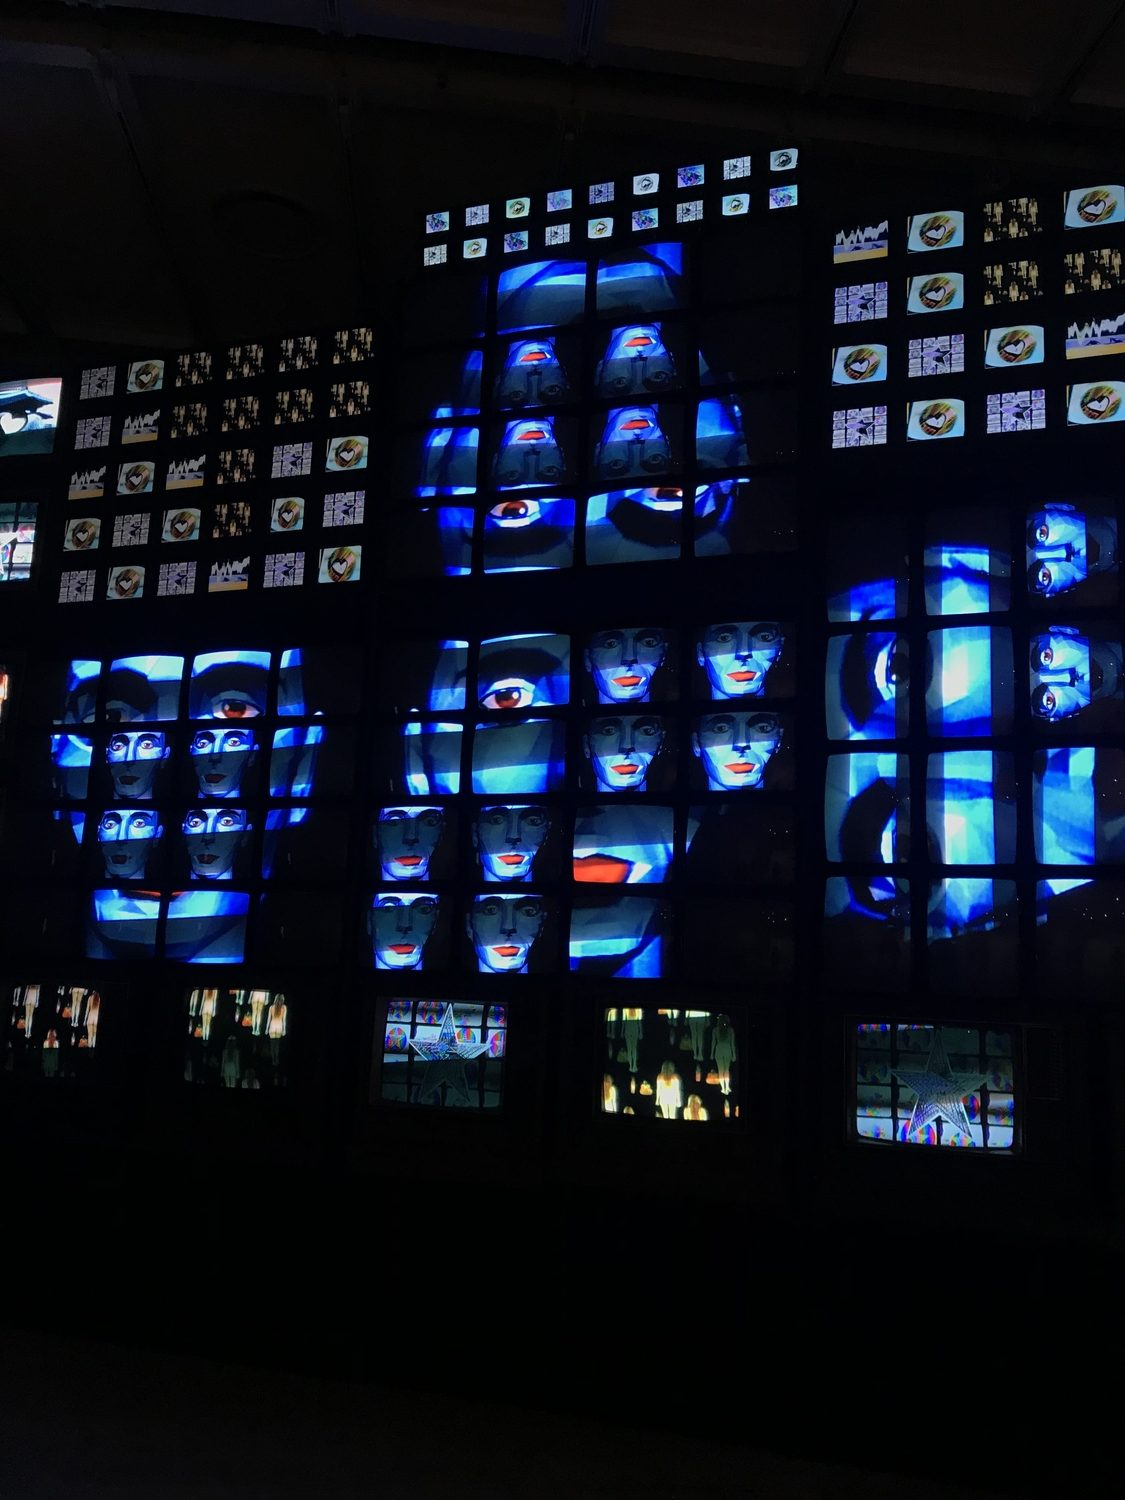 Here is the television installation 'Fin de Siecle II' by Nam June Paik.